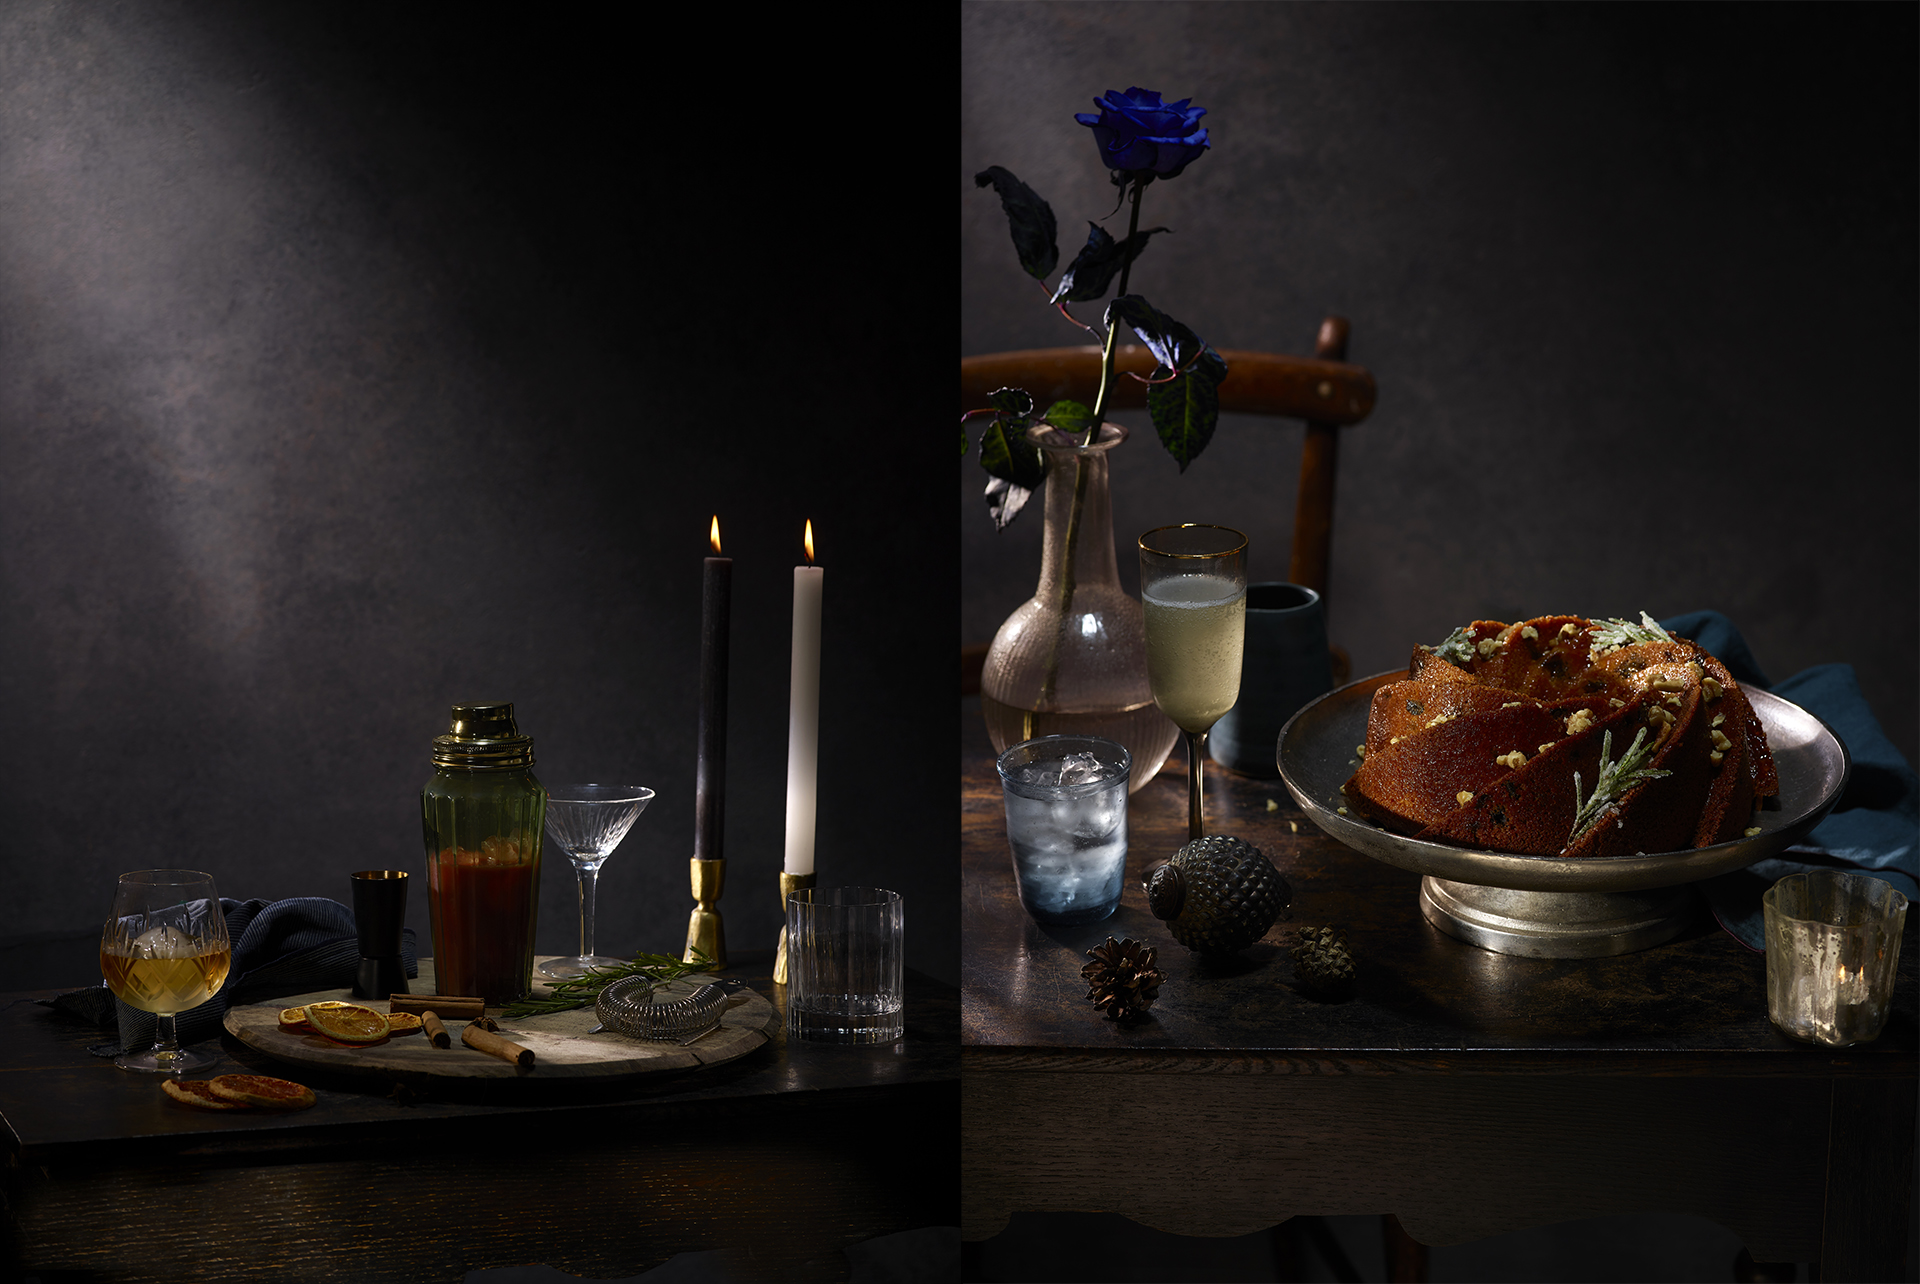 Two images from my Christmas 2019 campaign - A cocktail incidental and a Bundt cake. Food and drink photography by Lauren Mclean